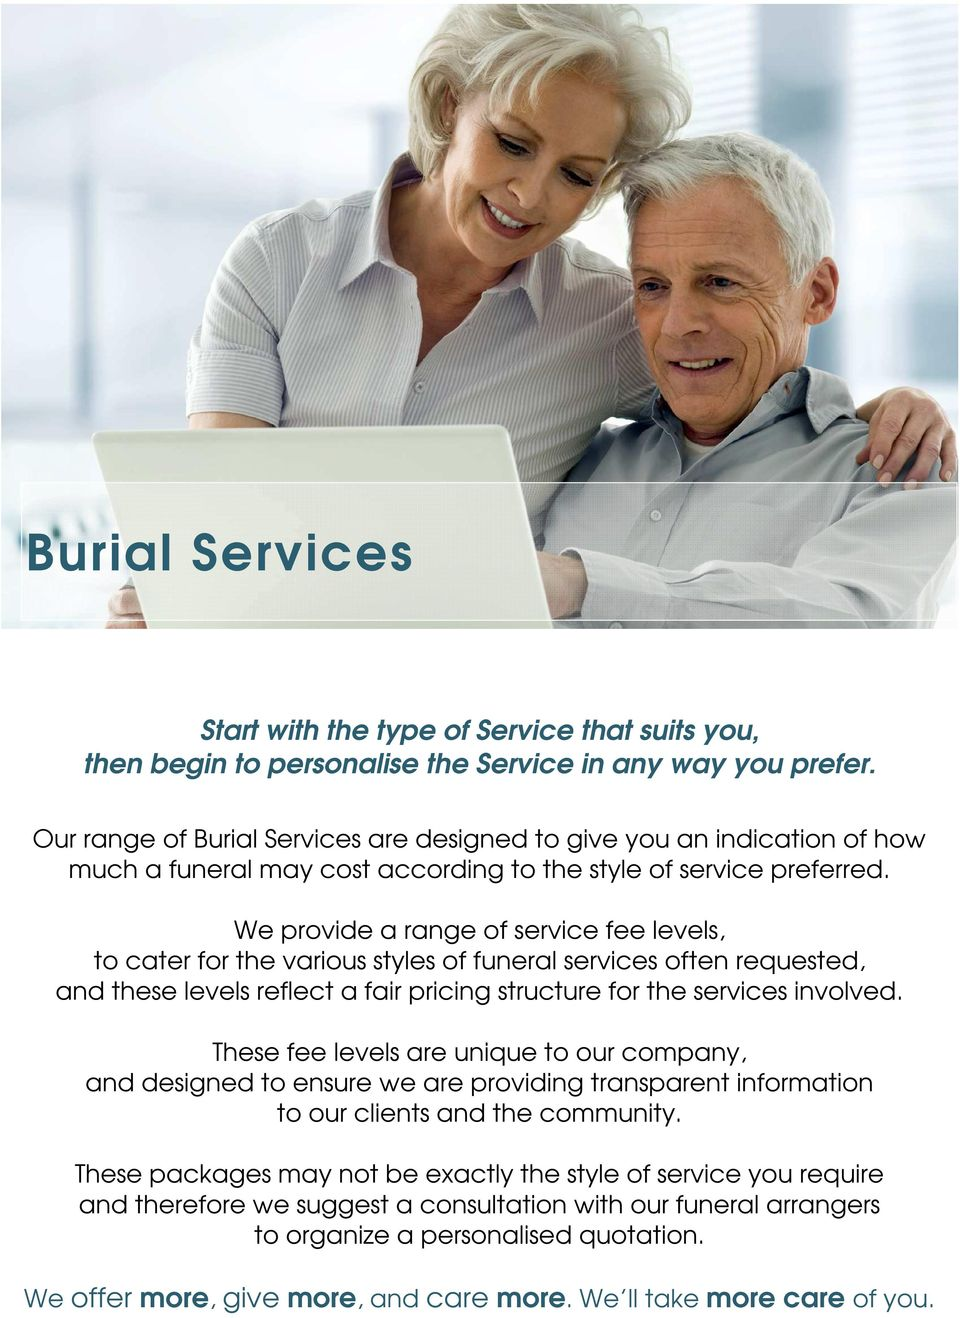 We provide a range of service fee levels, to cater for the various styles of funeral services often requested, and these levels reflect a fair pricing structure for the services involved.